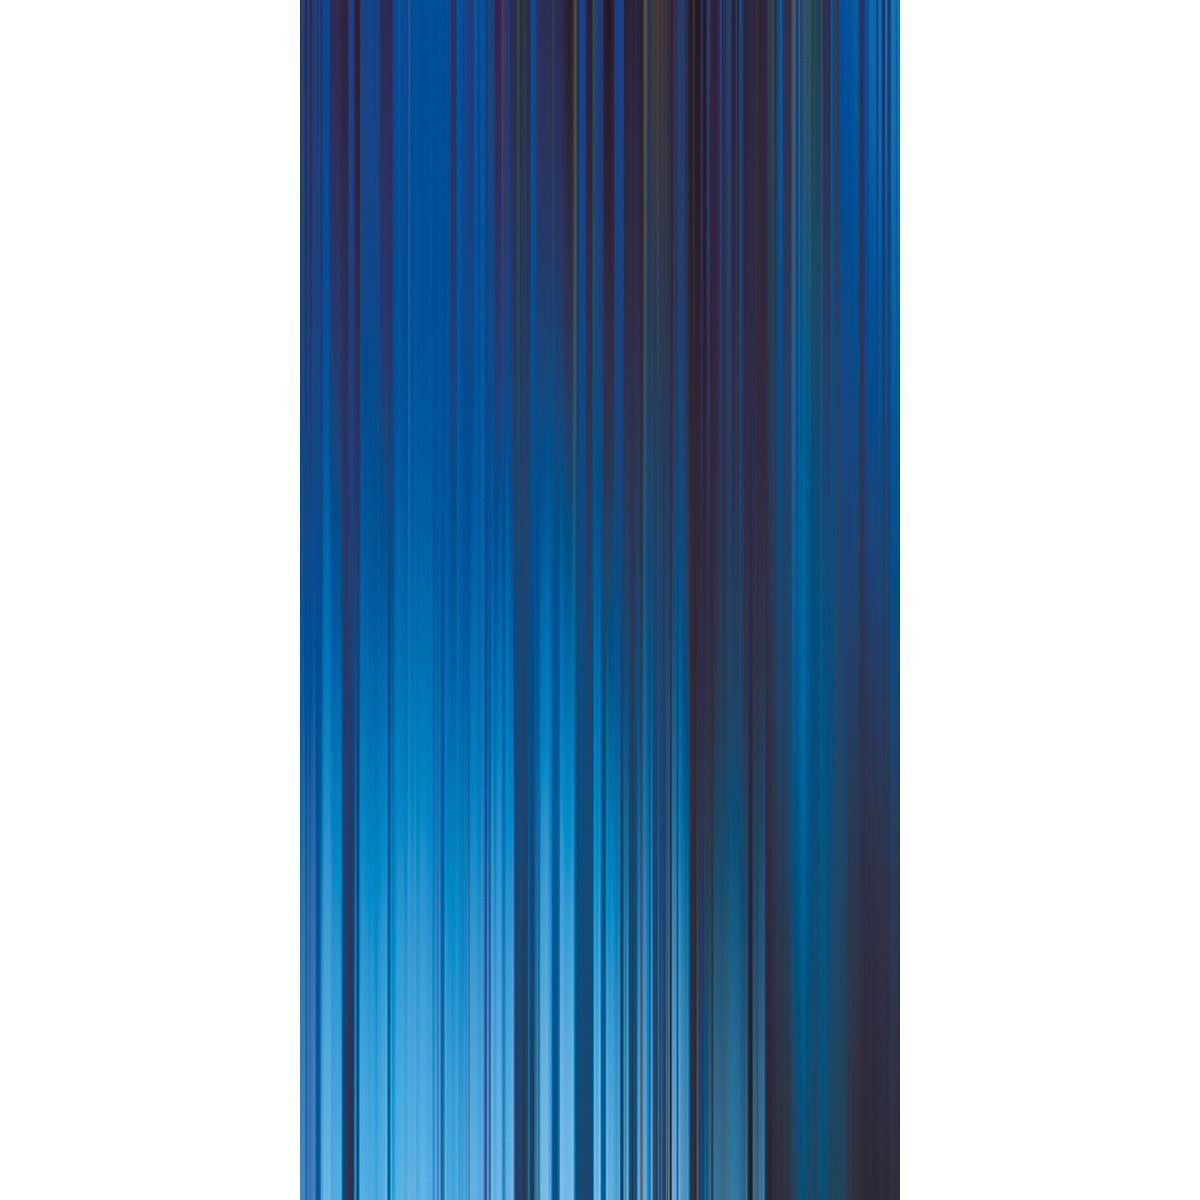 Wall Acoustics Panel 3 Muffle Abstract Mural - Kinetic Blue Panel 3